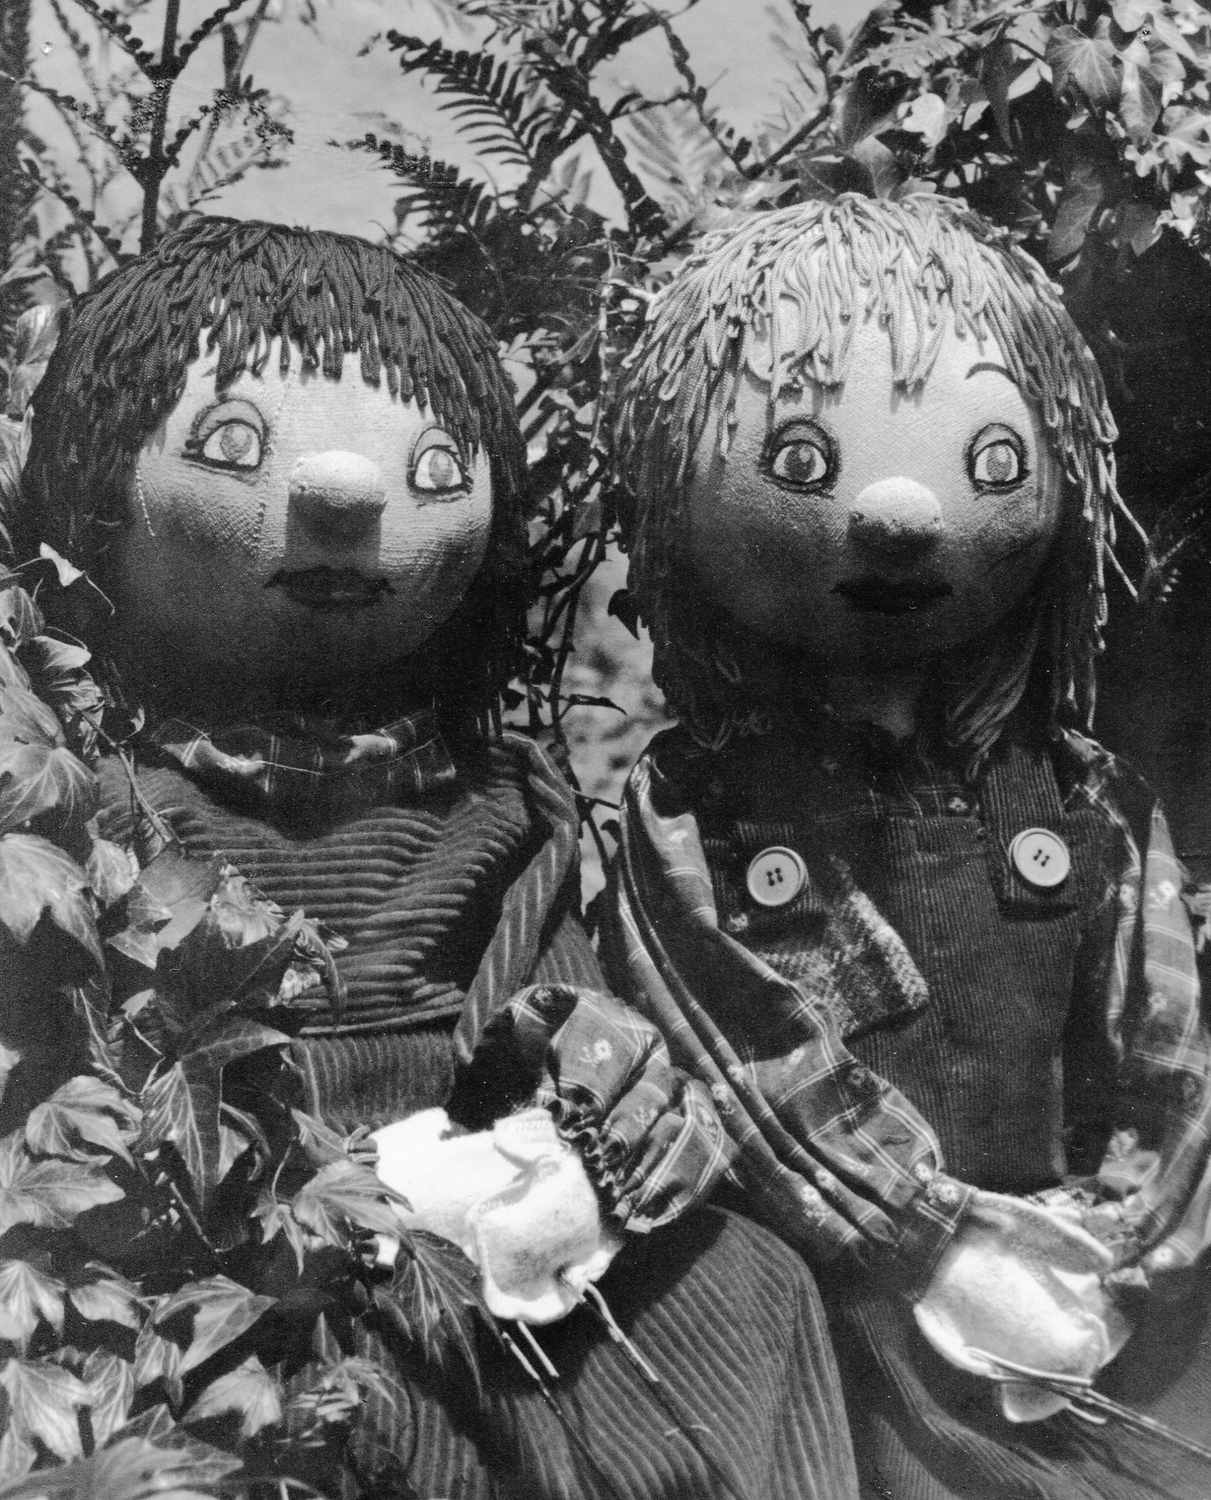 black and white picture of puppets in amongst foliage